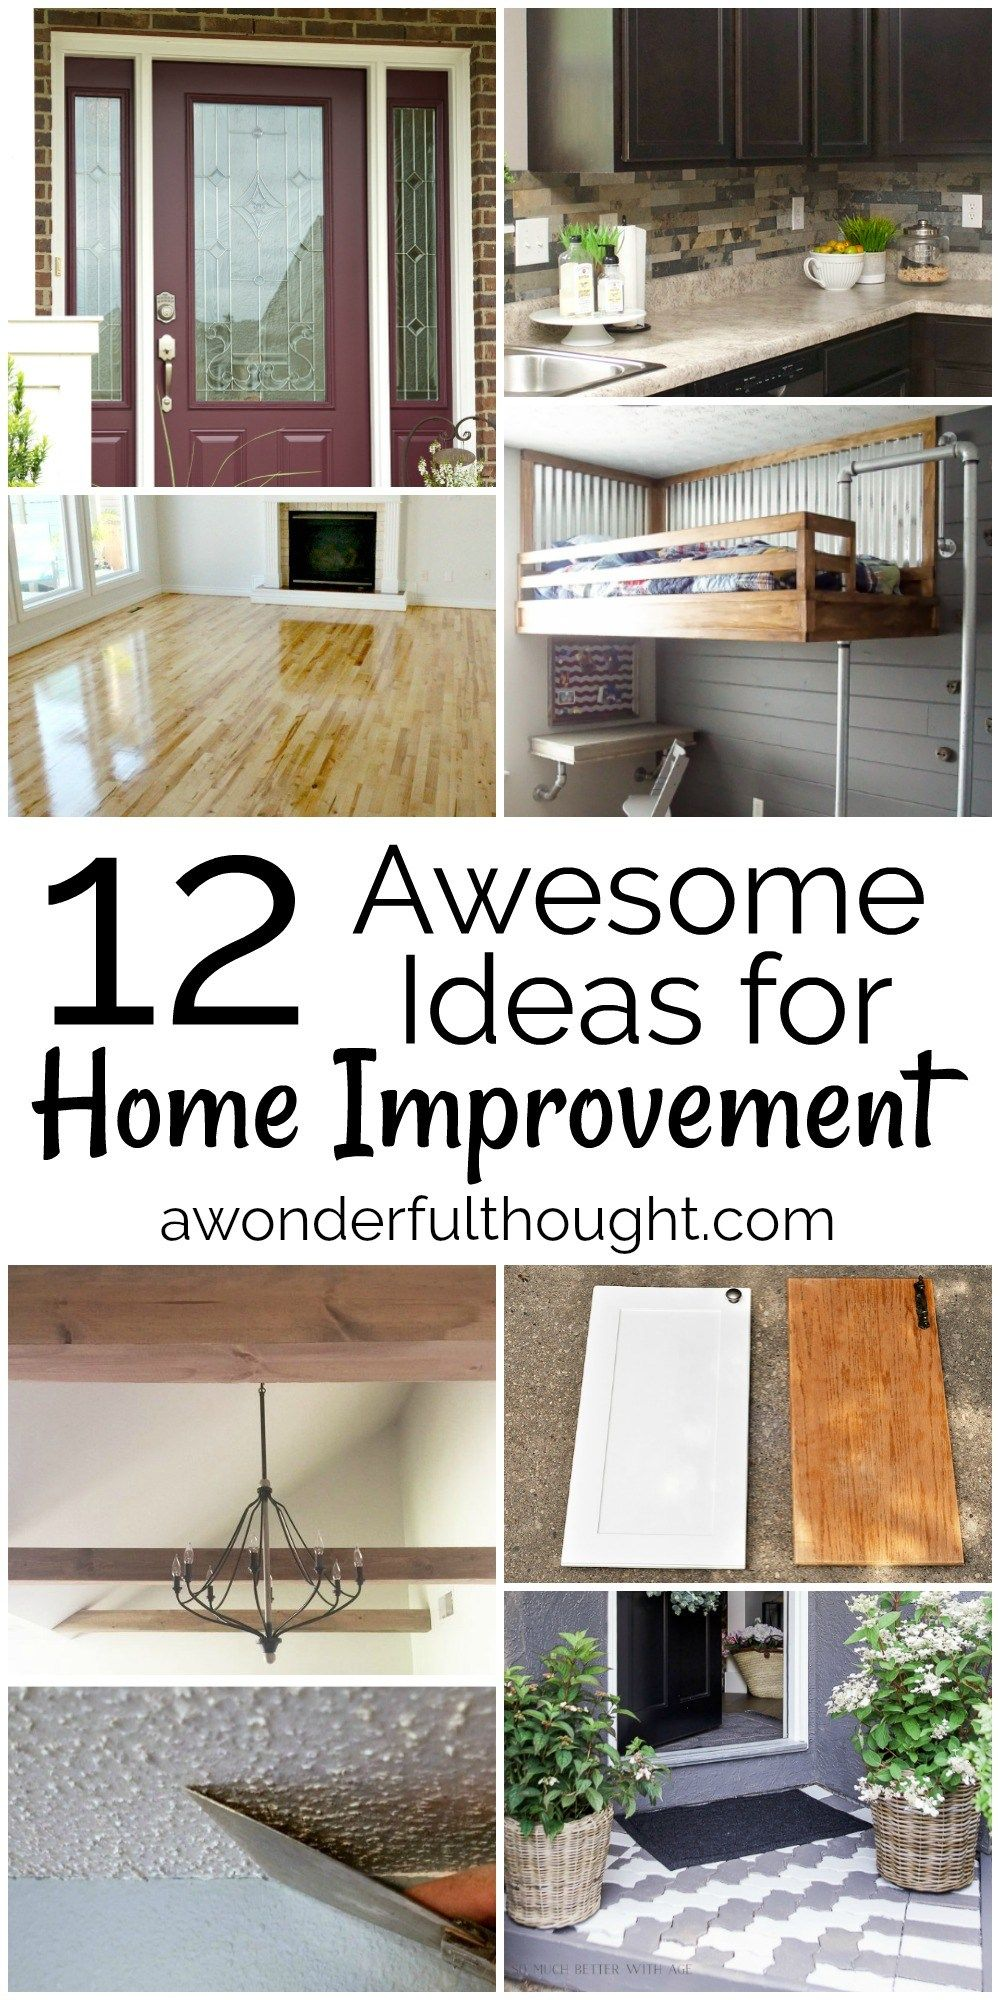 awesome home improvement ideas great diy projects to upgrade your on  budget awonderfulthought also budgeting rh pinterest